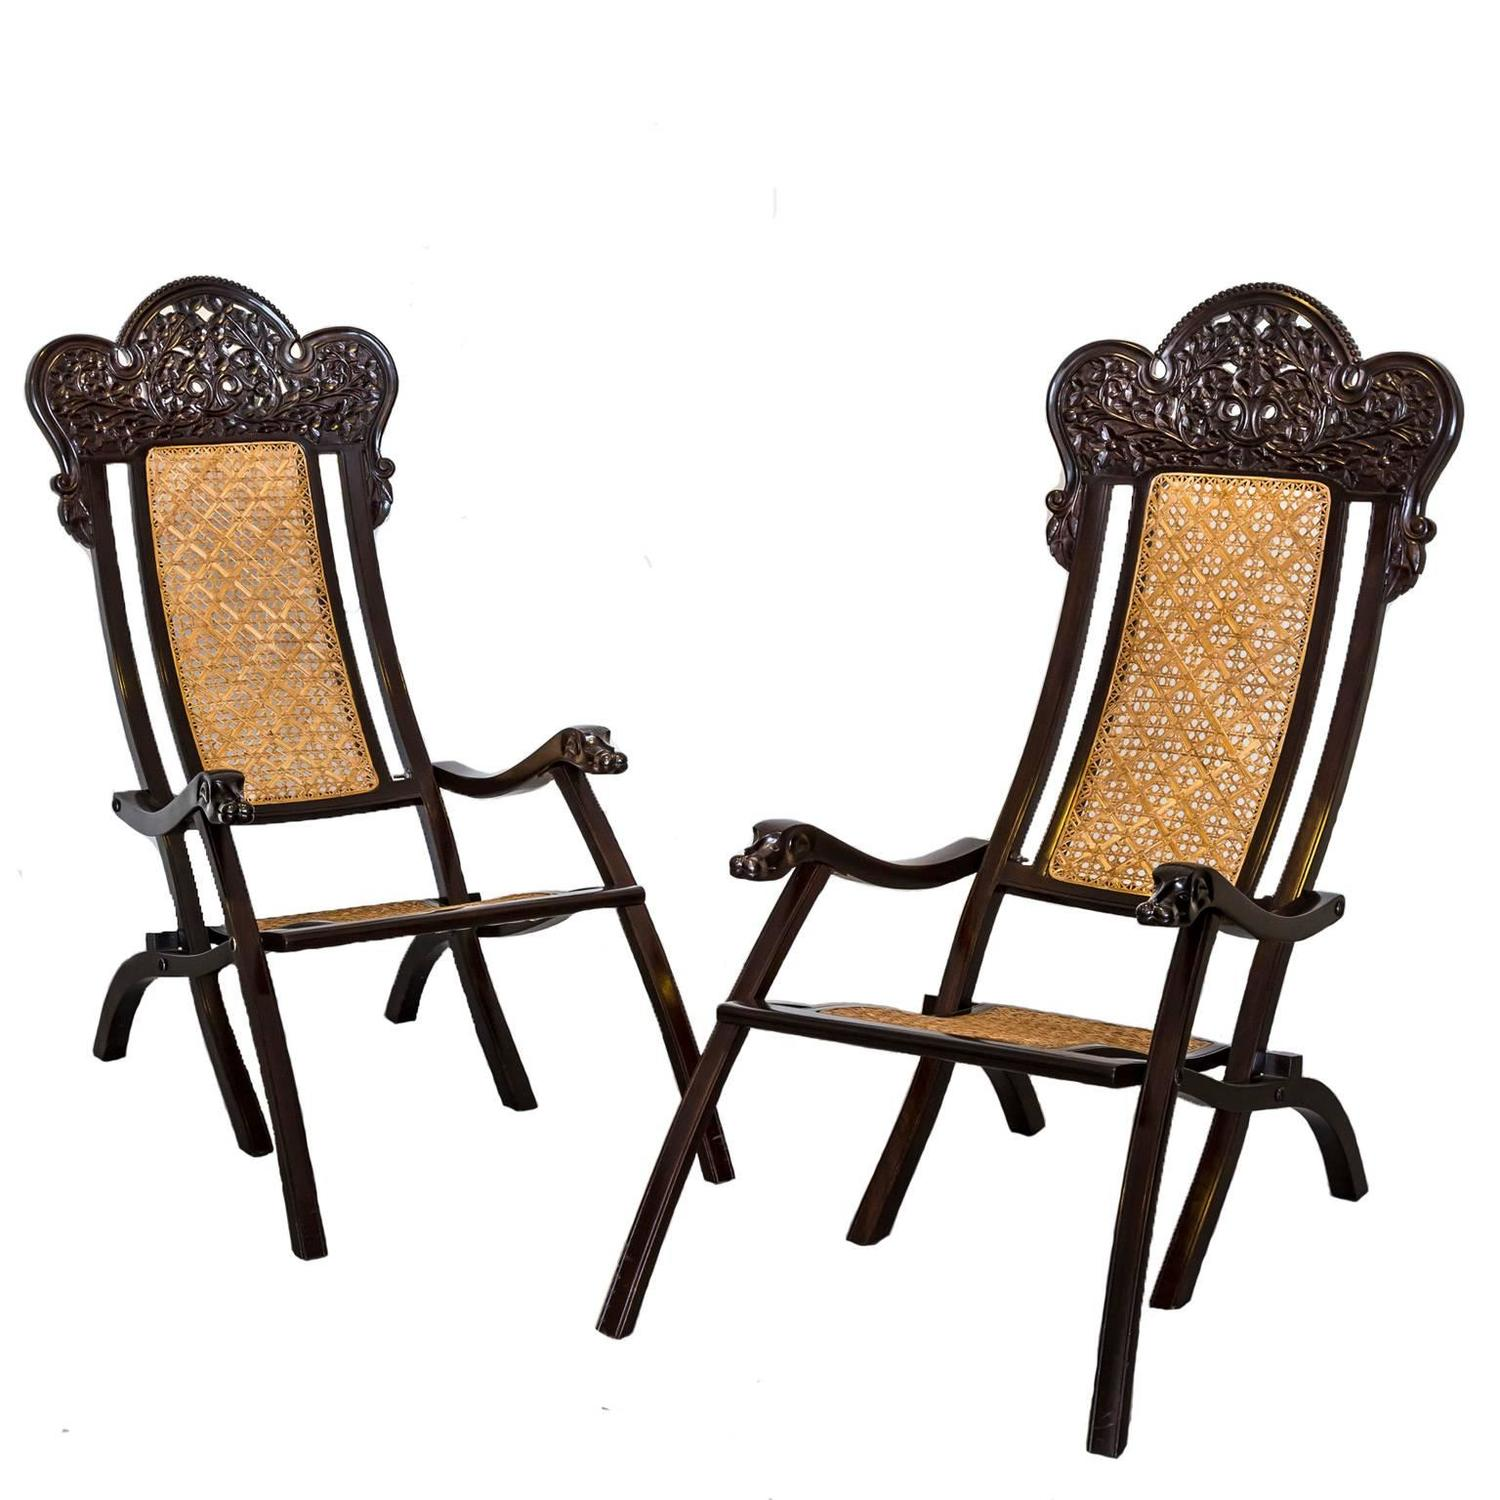 folding chair india stuffed animal chairs for toddlers pair of indo portuguese or colonial rosewood